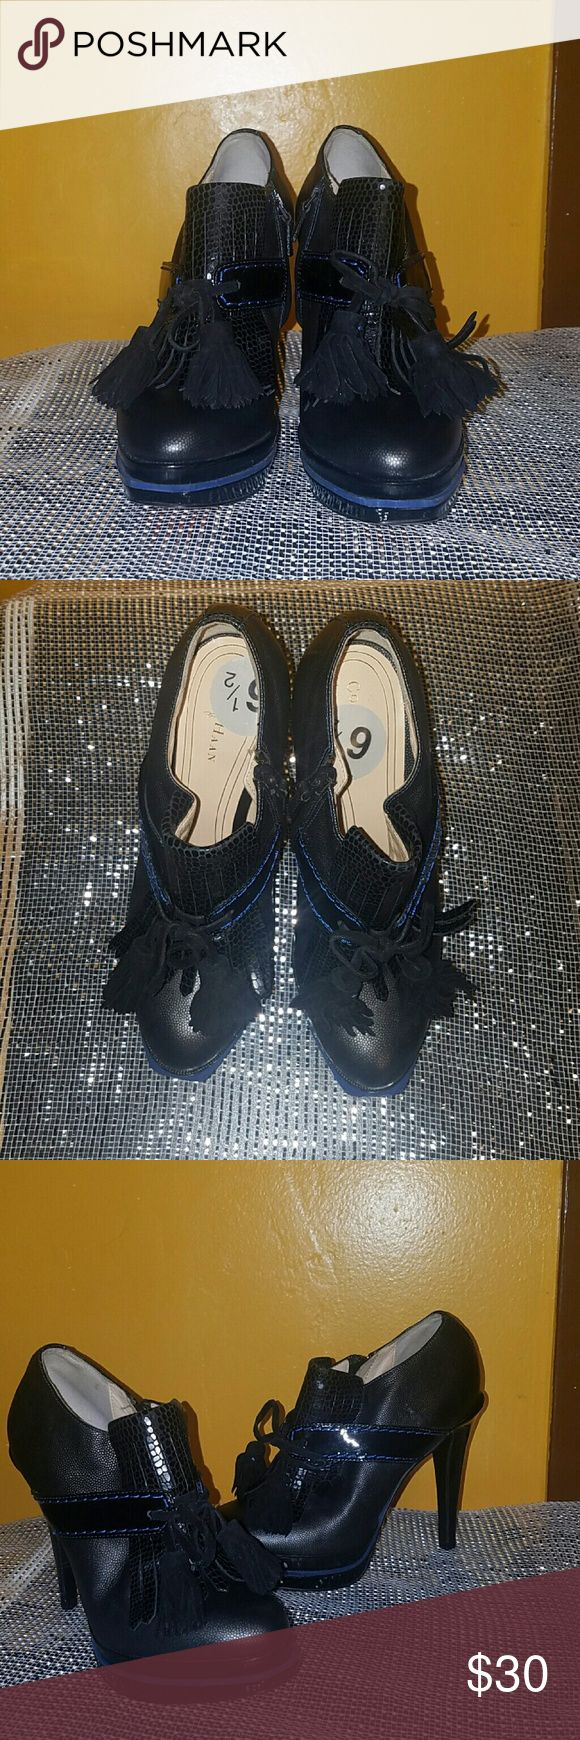 Black Cole Hann Shoes Black with Royal Blue stitching Cole Hann Shoes. Has tassels in the front and zips on the side.  Love these shoes but they're a little snug. Only tired on, never worn. Cole Haan Shoes Heels